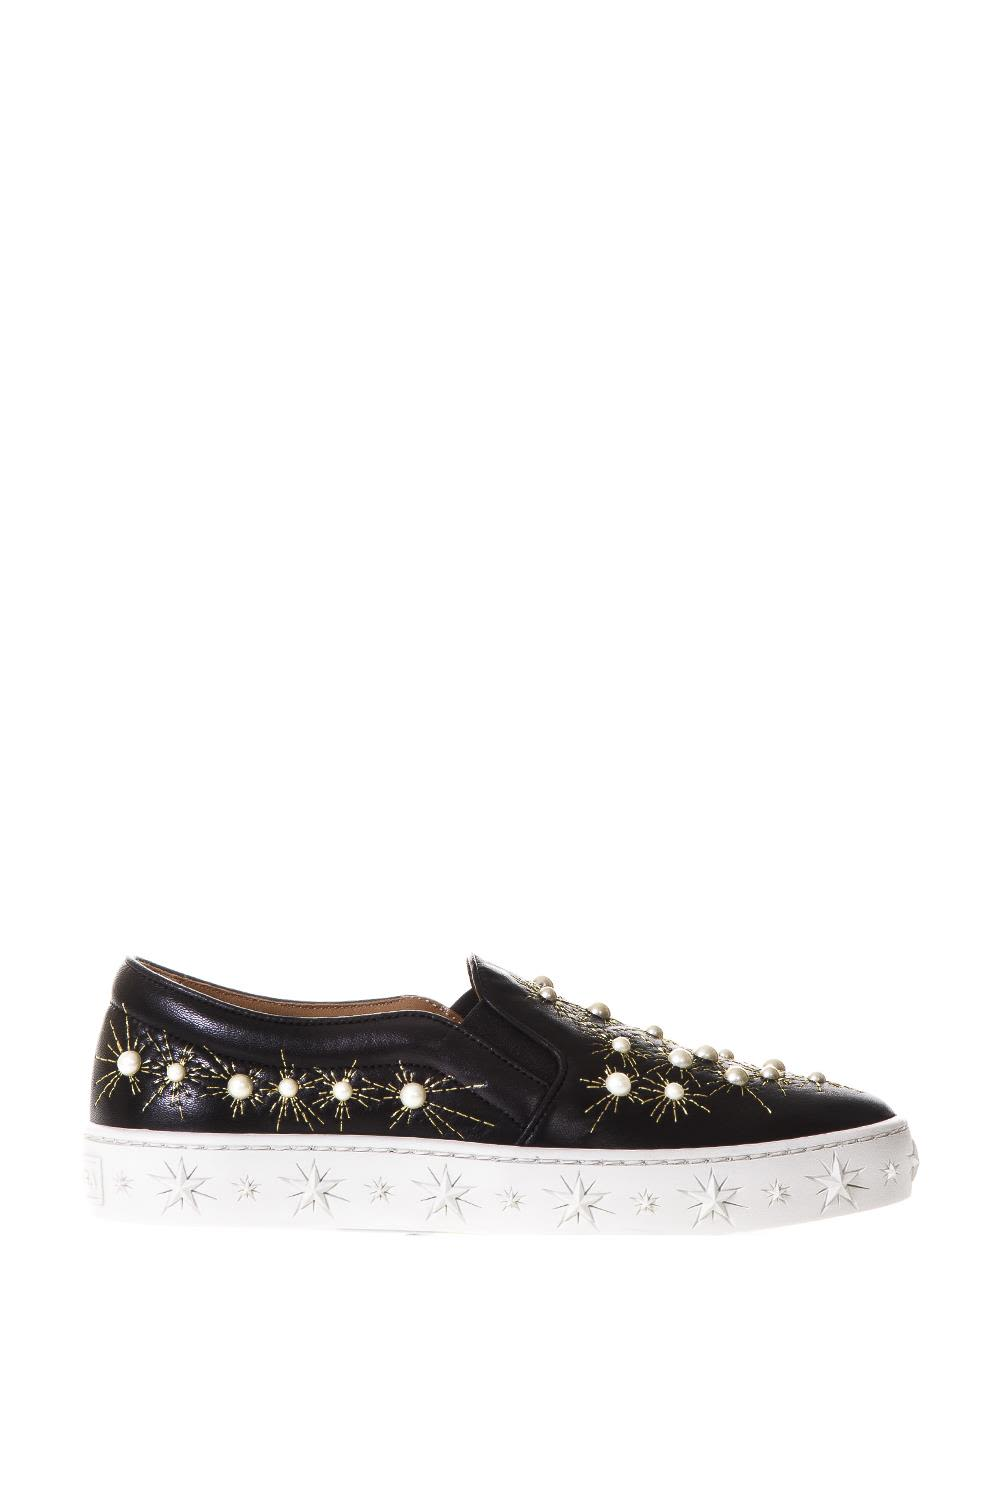 Cosmic Pearls leather slip-on sneakers Aquazzura Get To Buy Online High Quality Stockist Online Eastbay Cheap Price Discount Extremely 2LSBaCk5lc